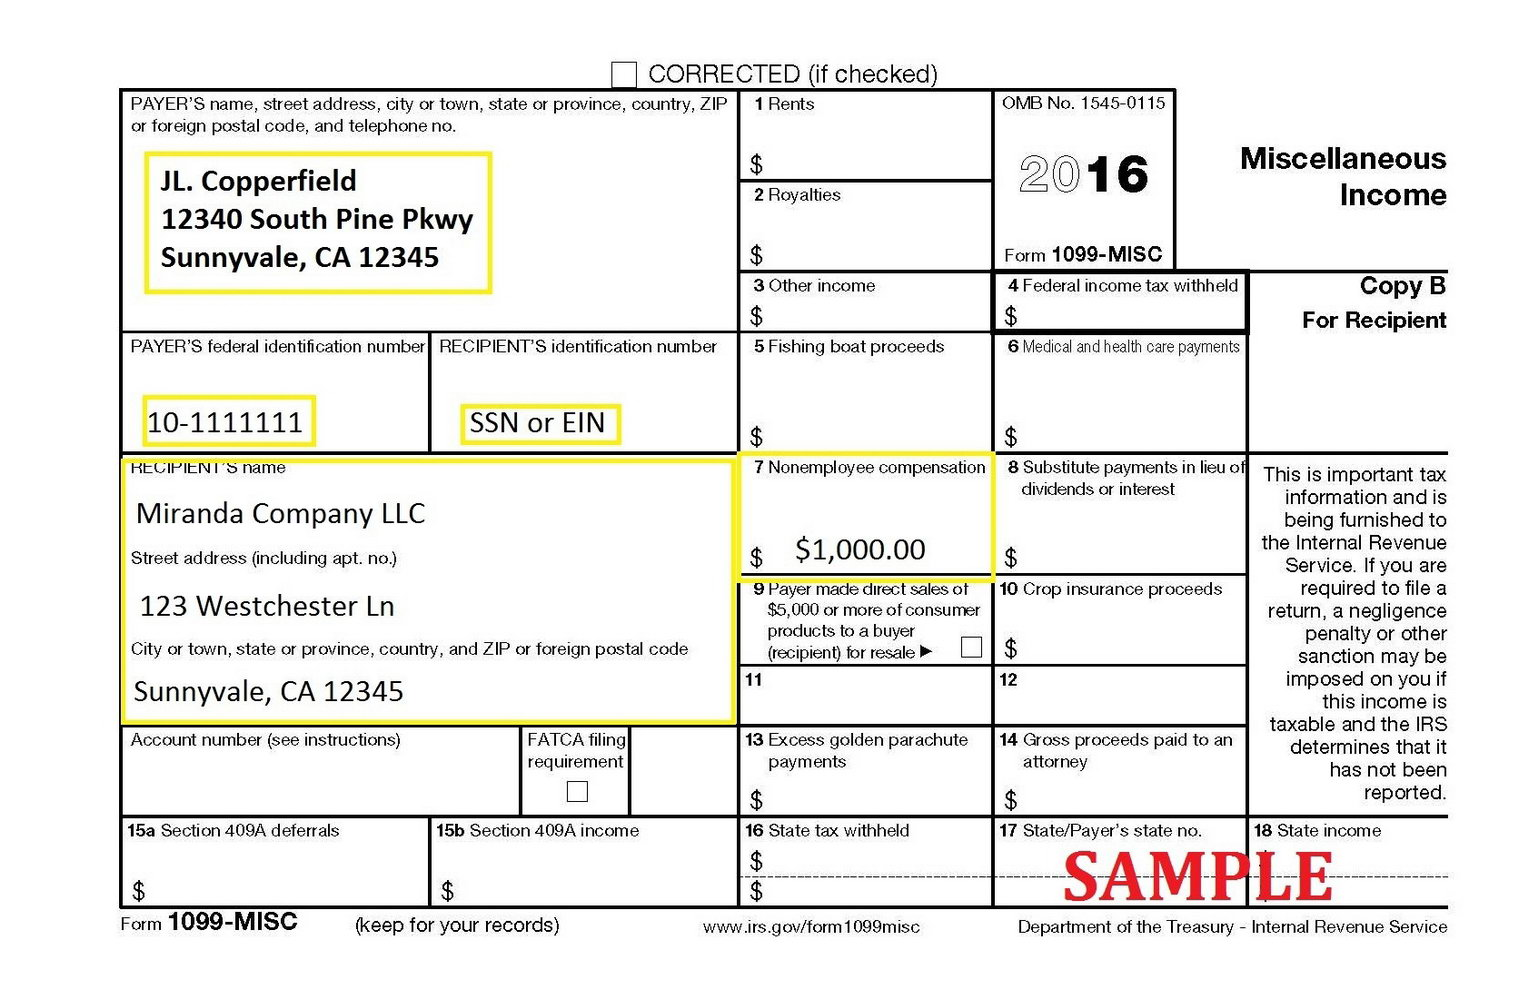 How To Fill Out A 1099 Misc Form 2016